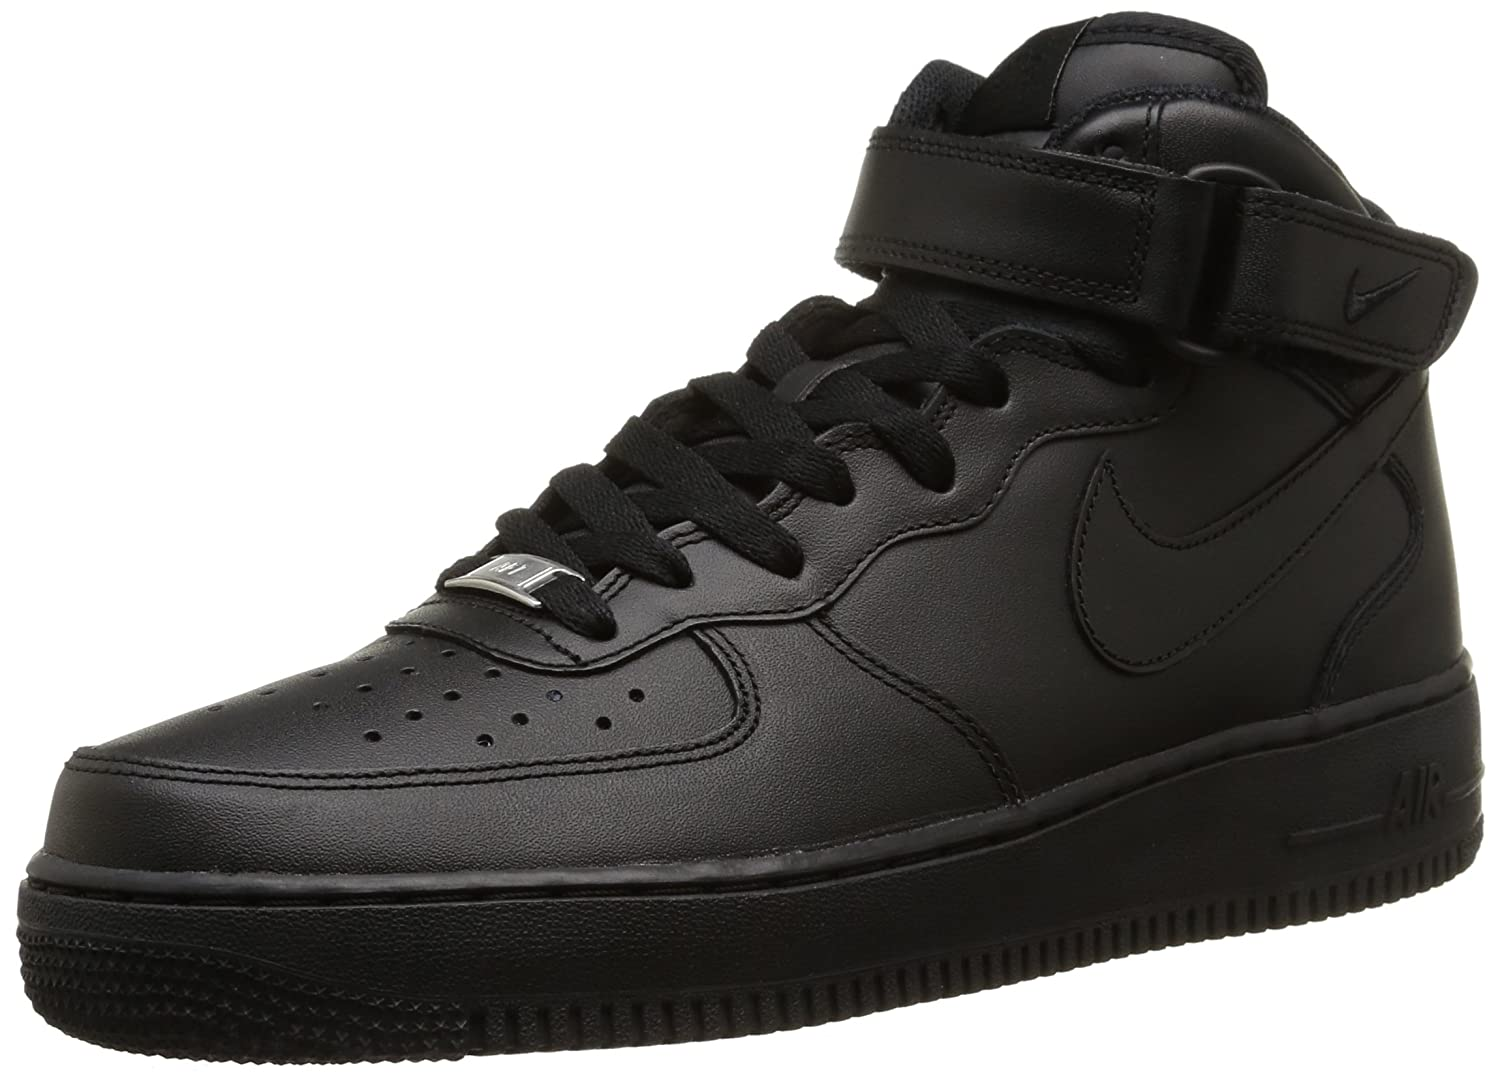 quality design fdce5 d2ecb Nike Men s Air Force 1 Mid 07 Trainers